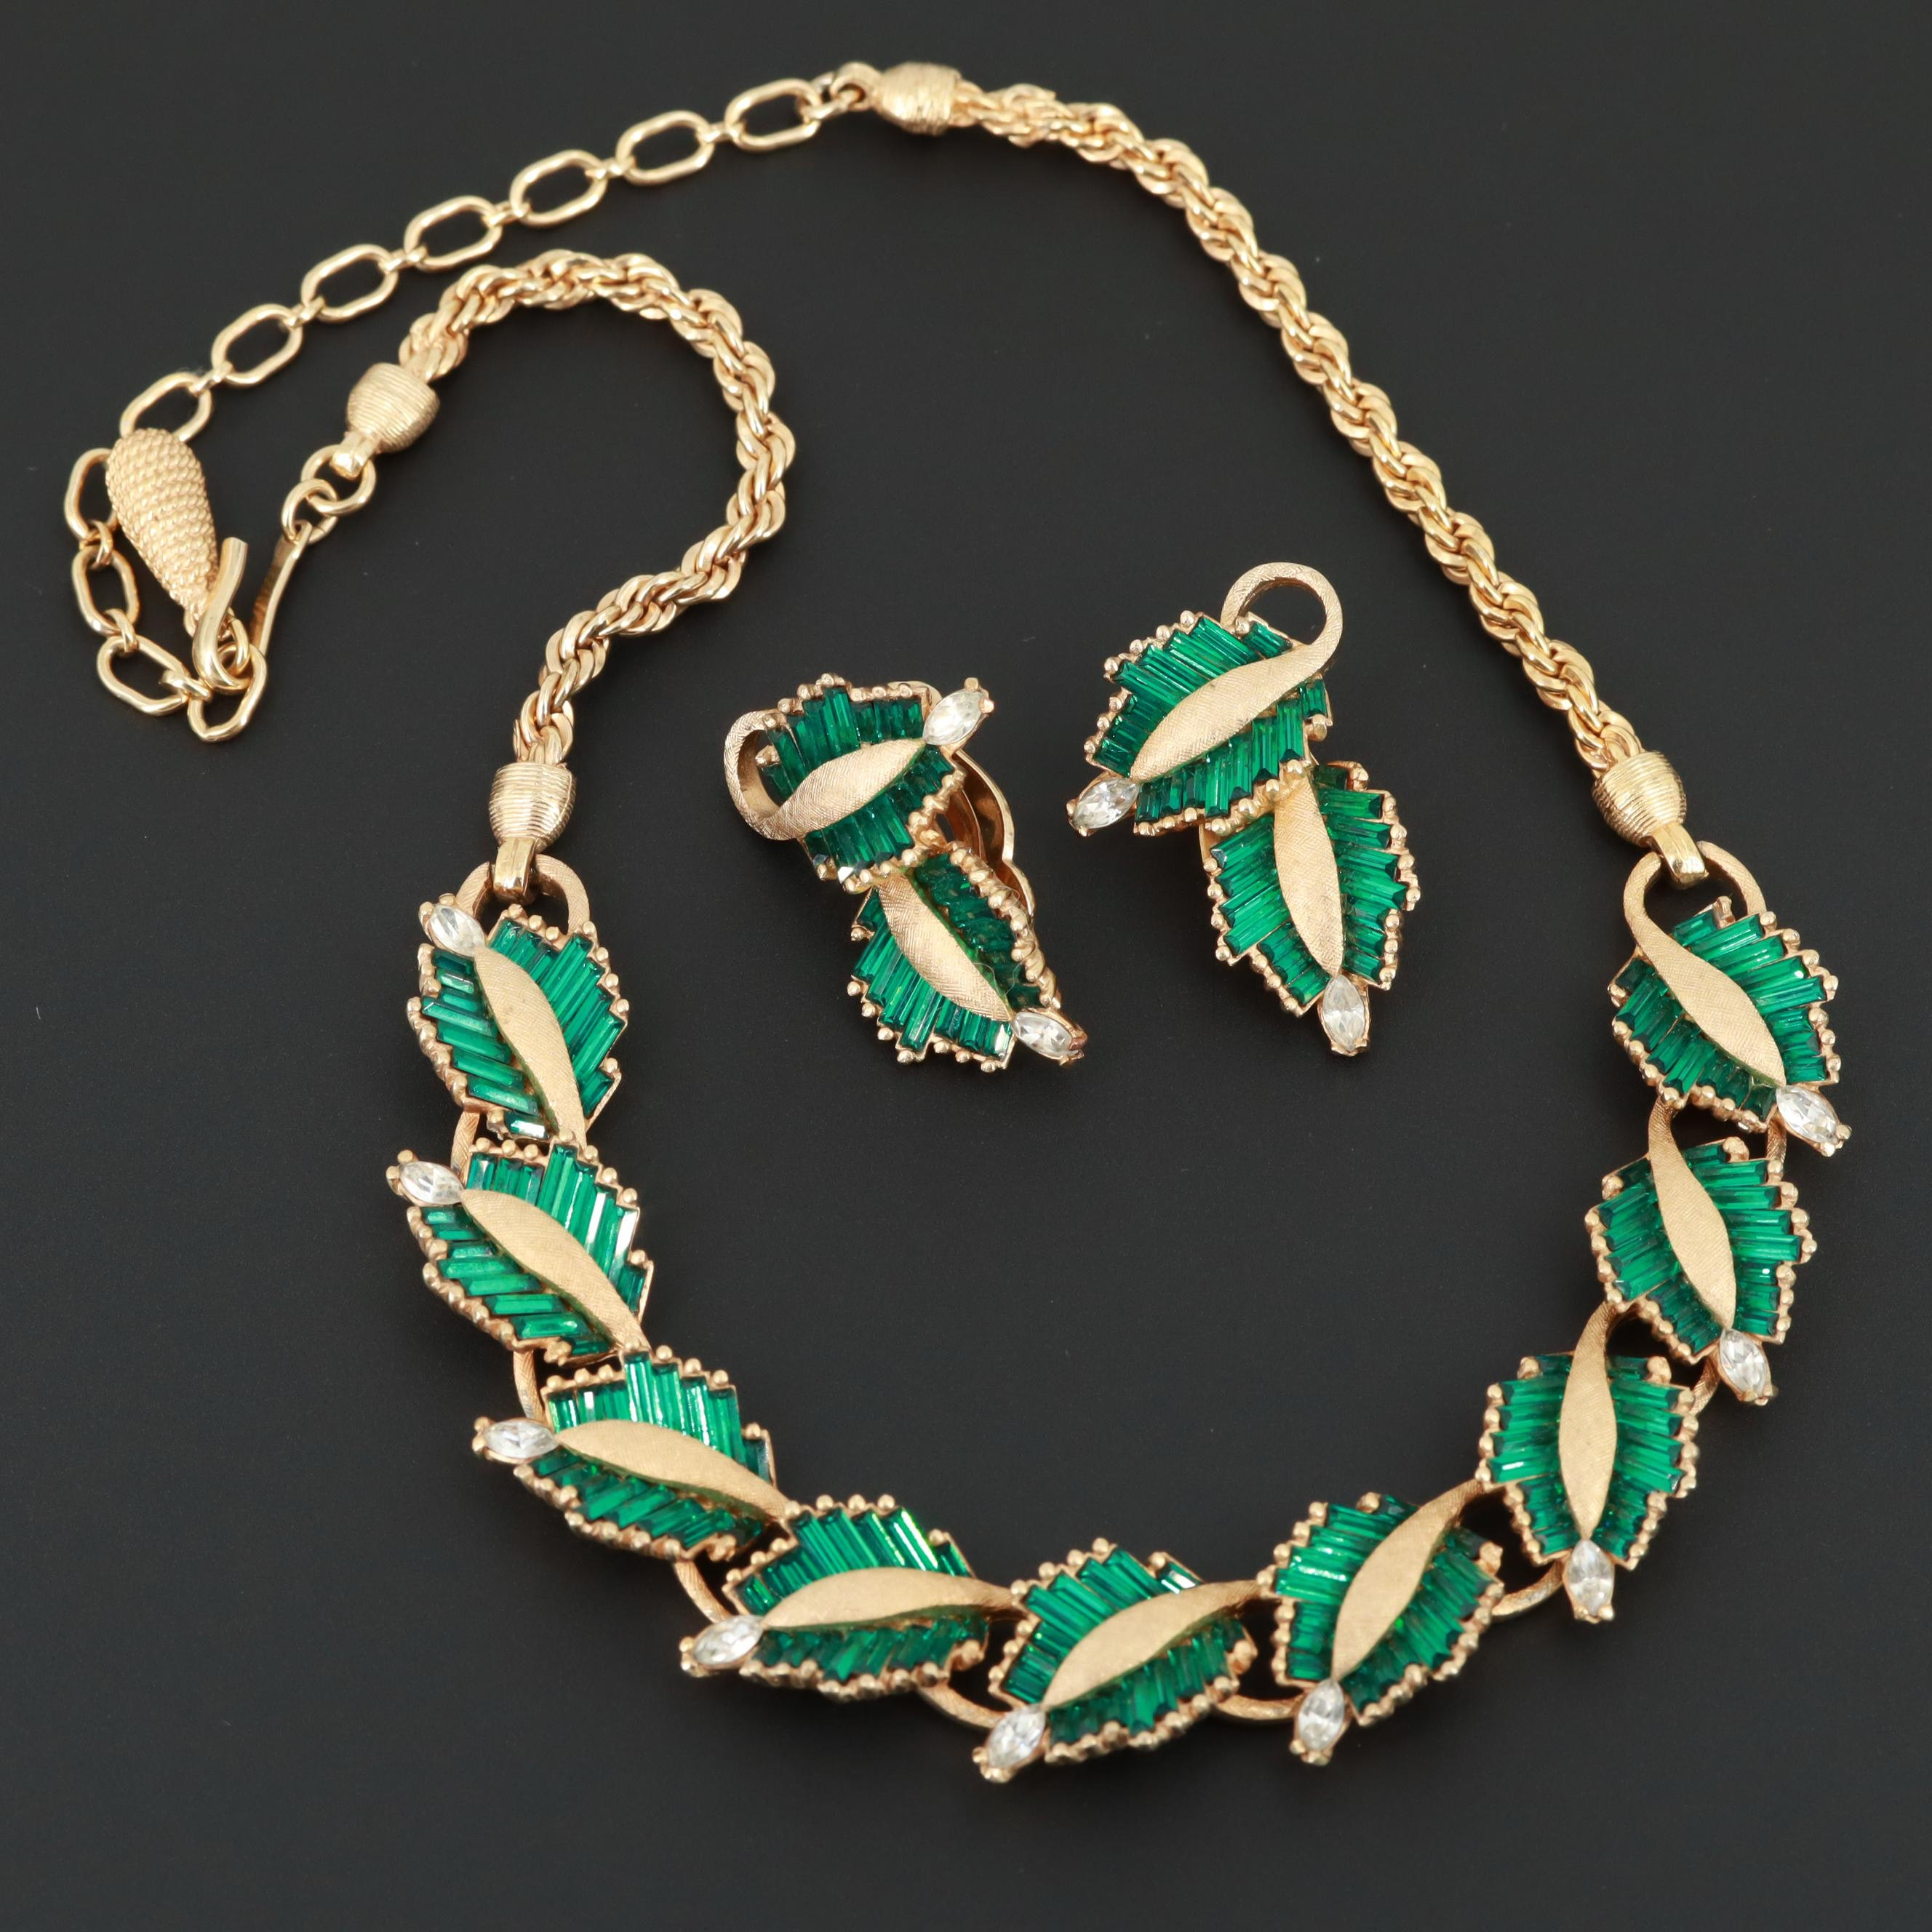 Pennino Gold Tone Foilback Glass Necklace and Earrings Set